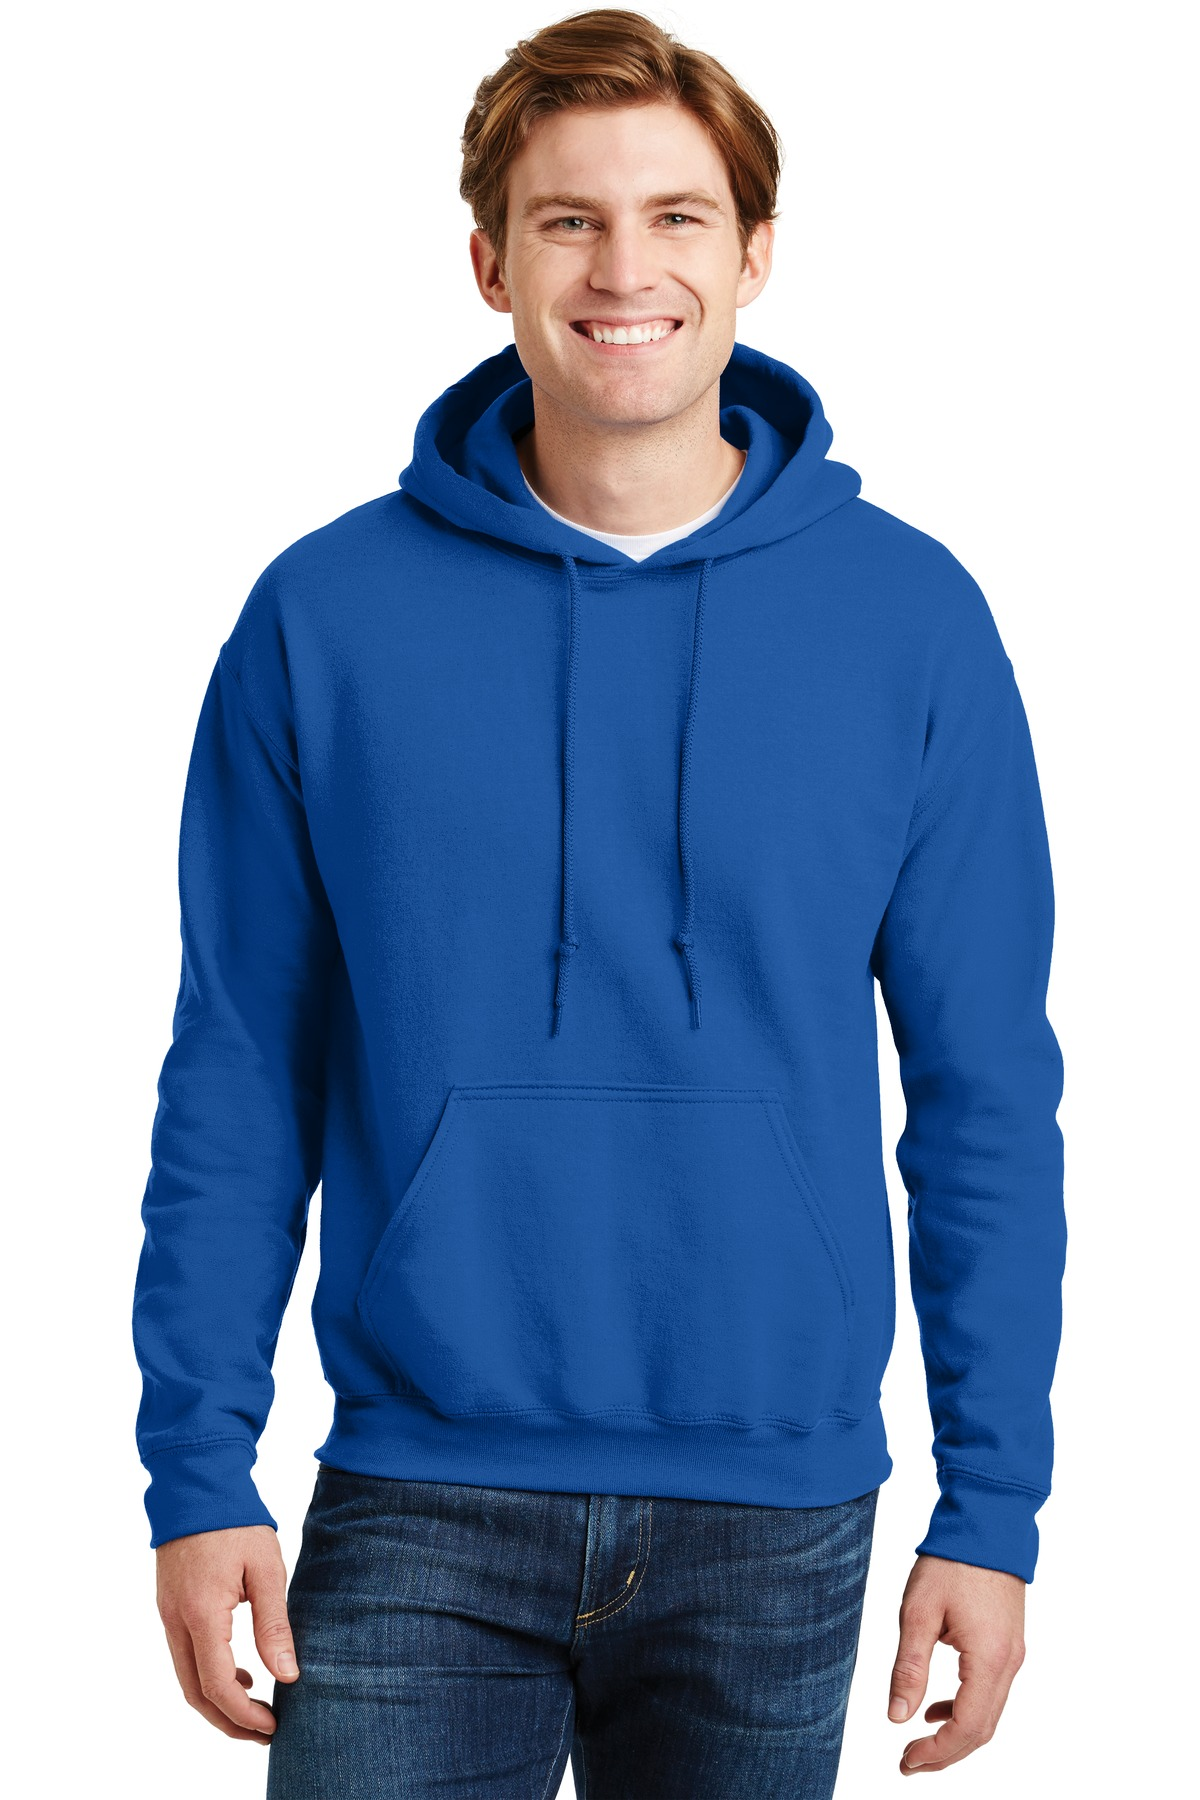 Gildan ®  - DryBlend ®  Pullover Hooded Sweatshirt.  12500 - Royal